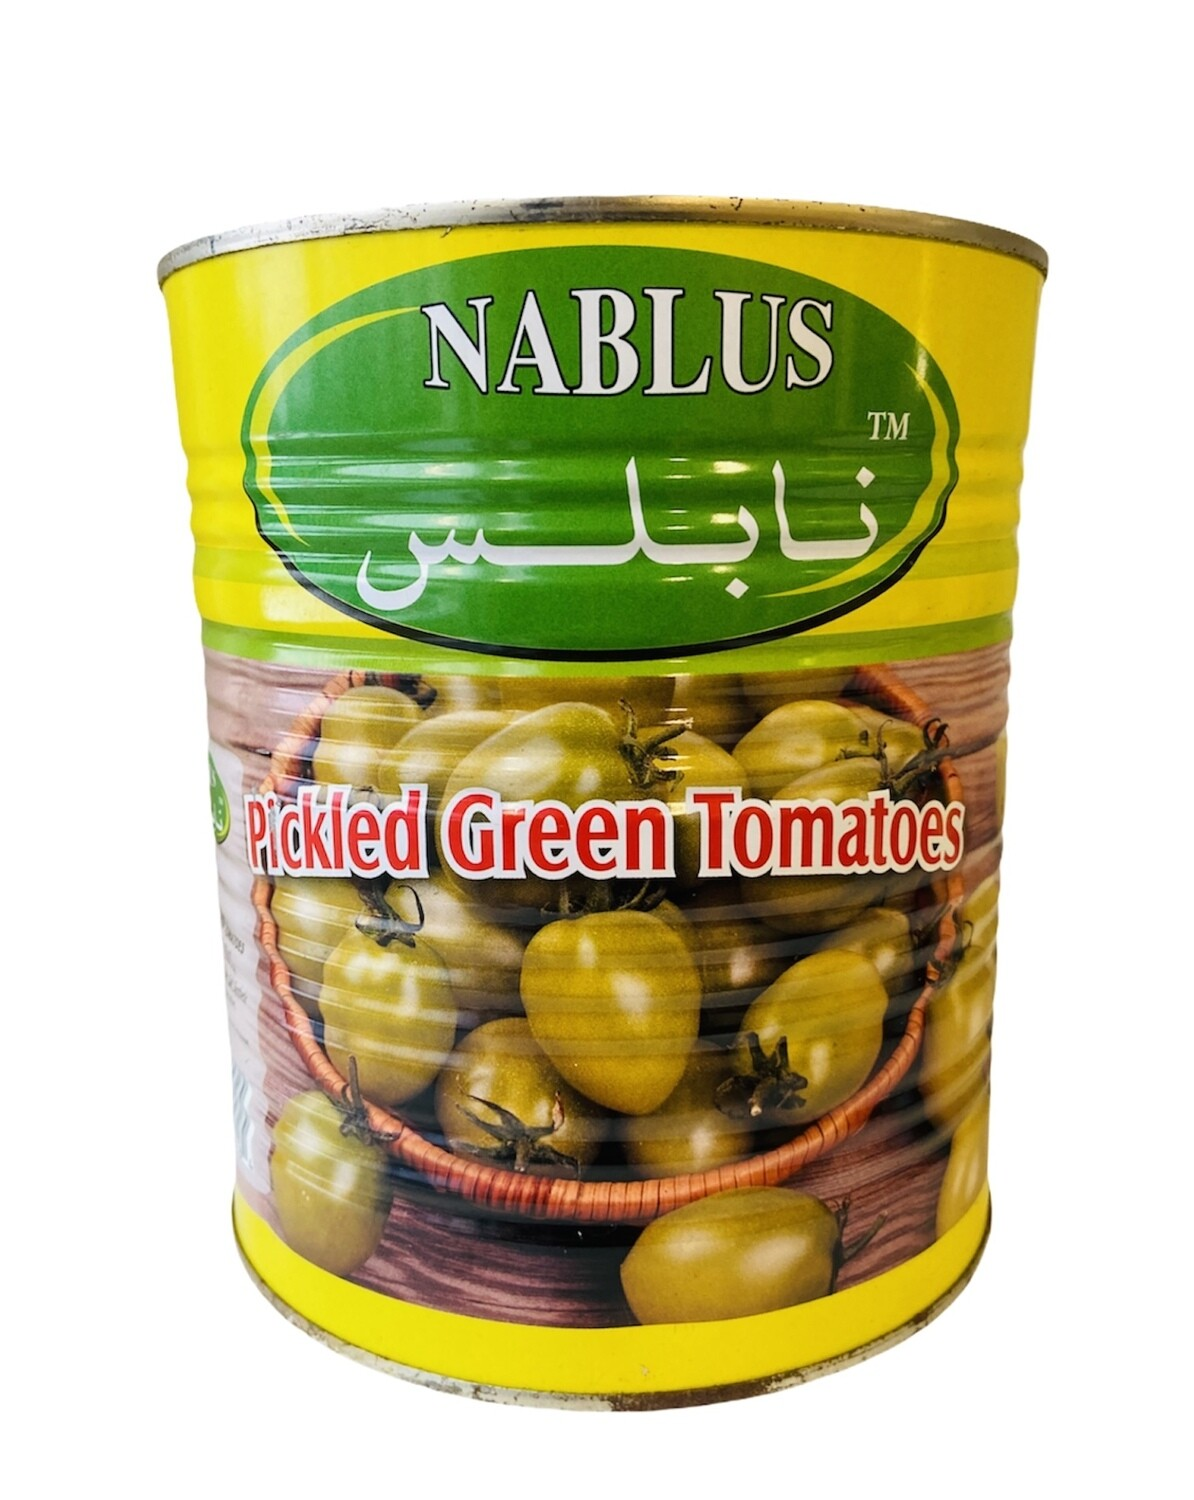 Nablus Pickled Green Tomatoes 6x6lb